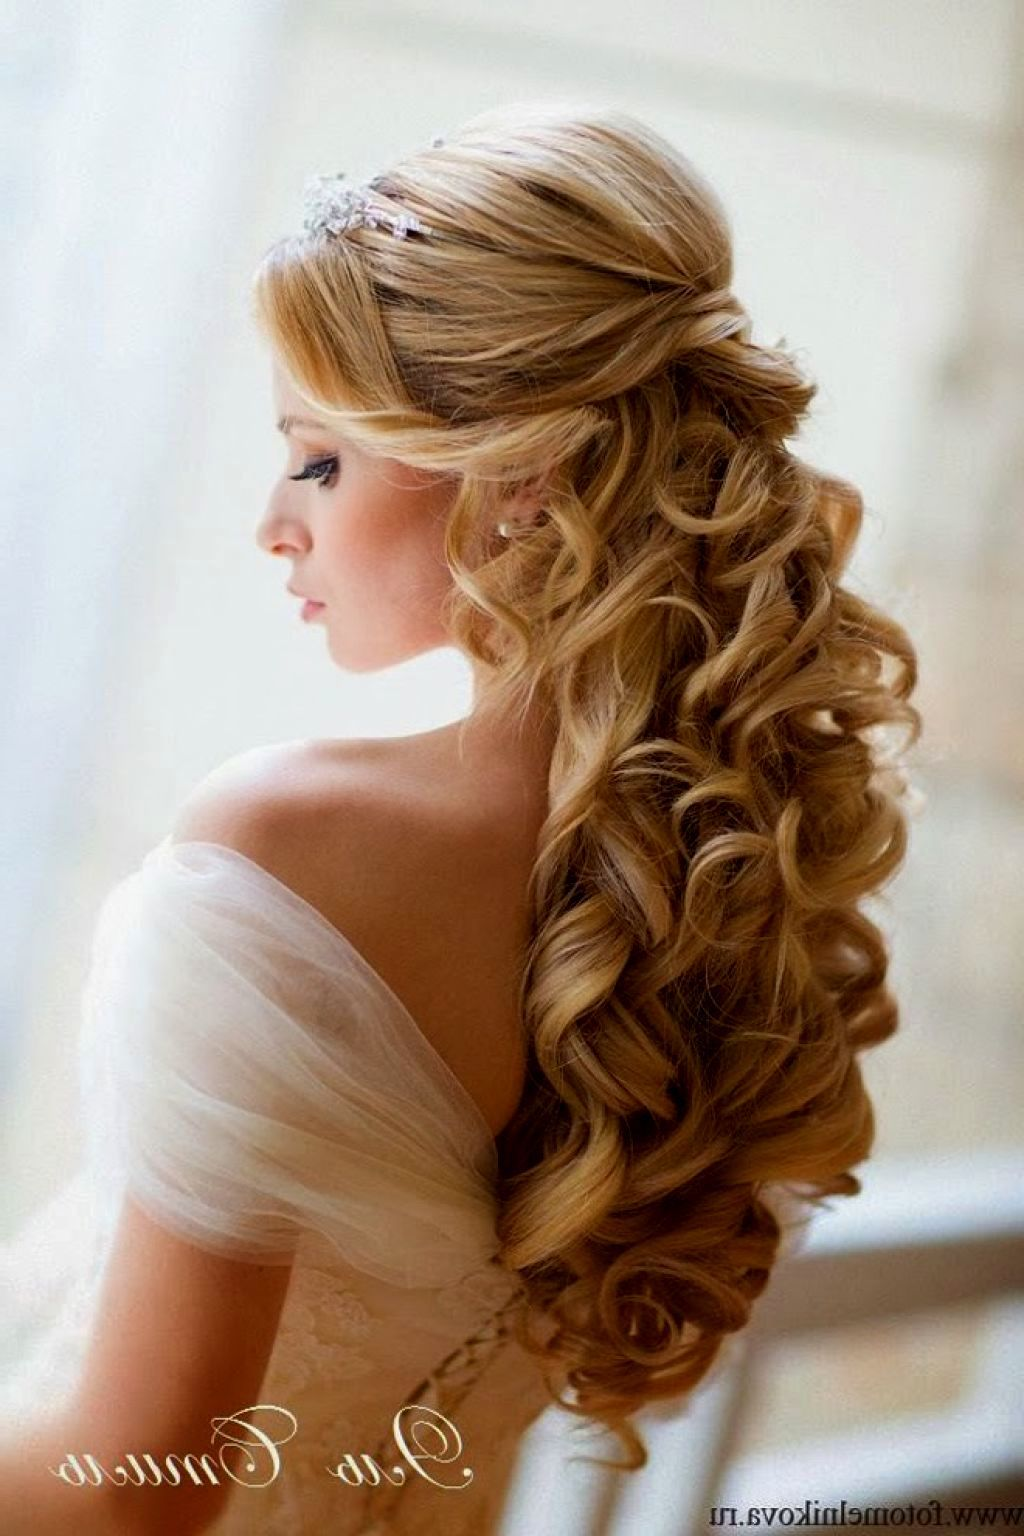 wedding-hair-half-up-half-down-with-veil-wedding-hair-half-up-half